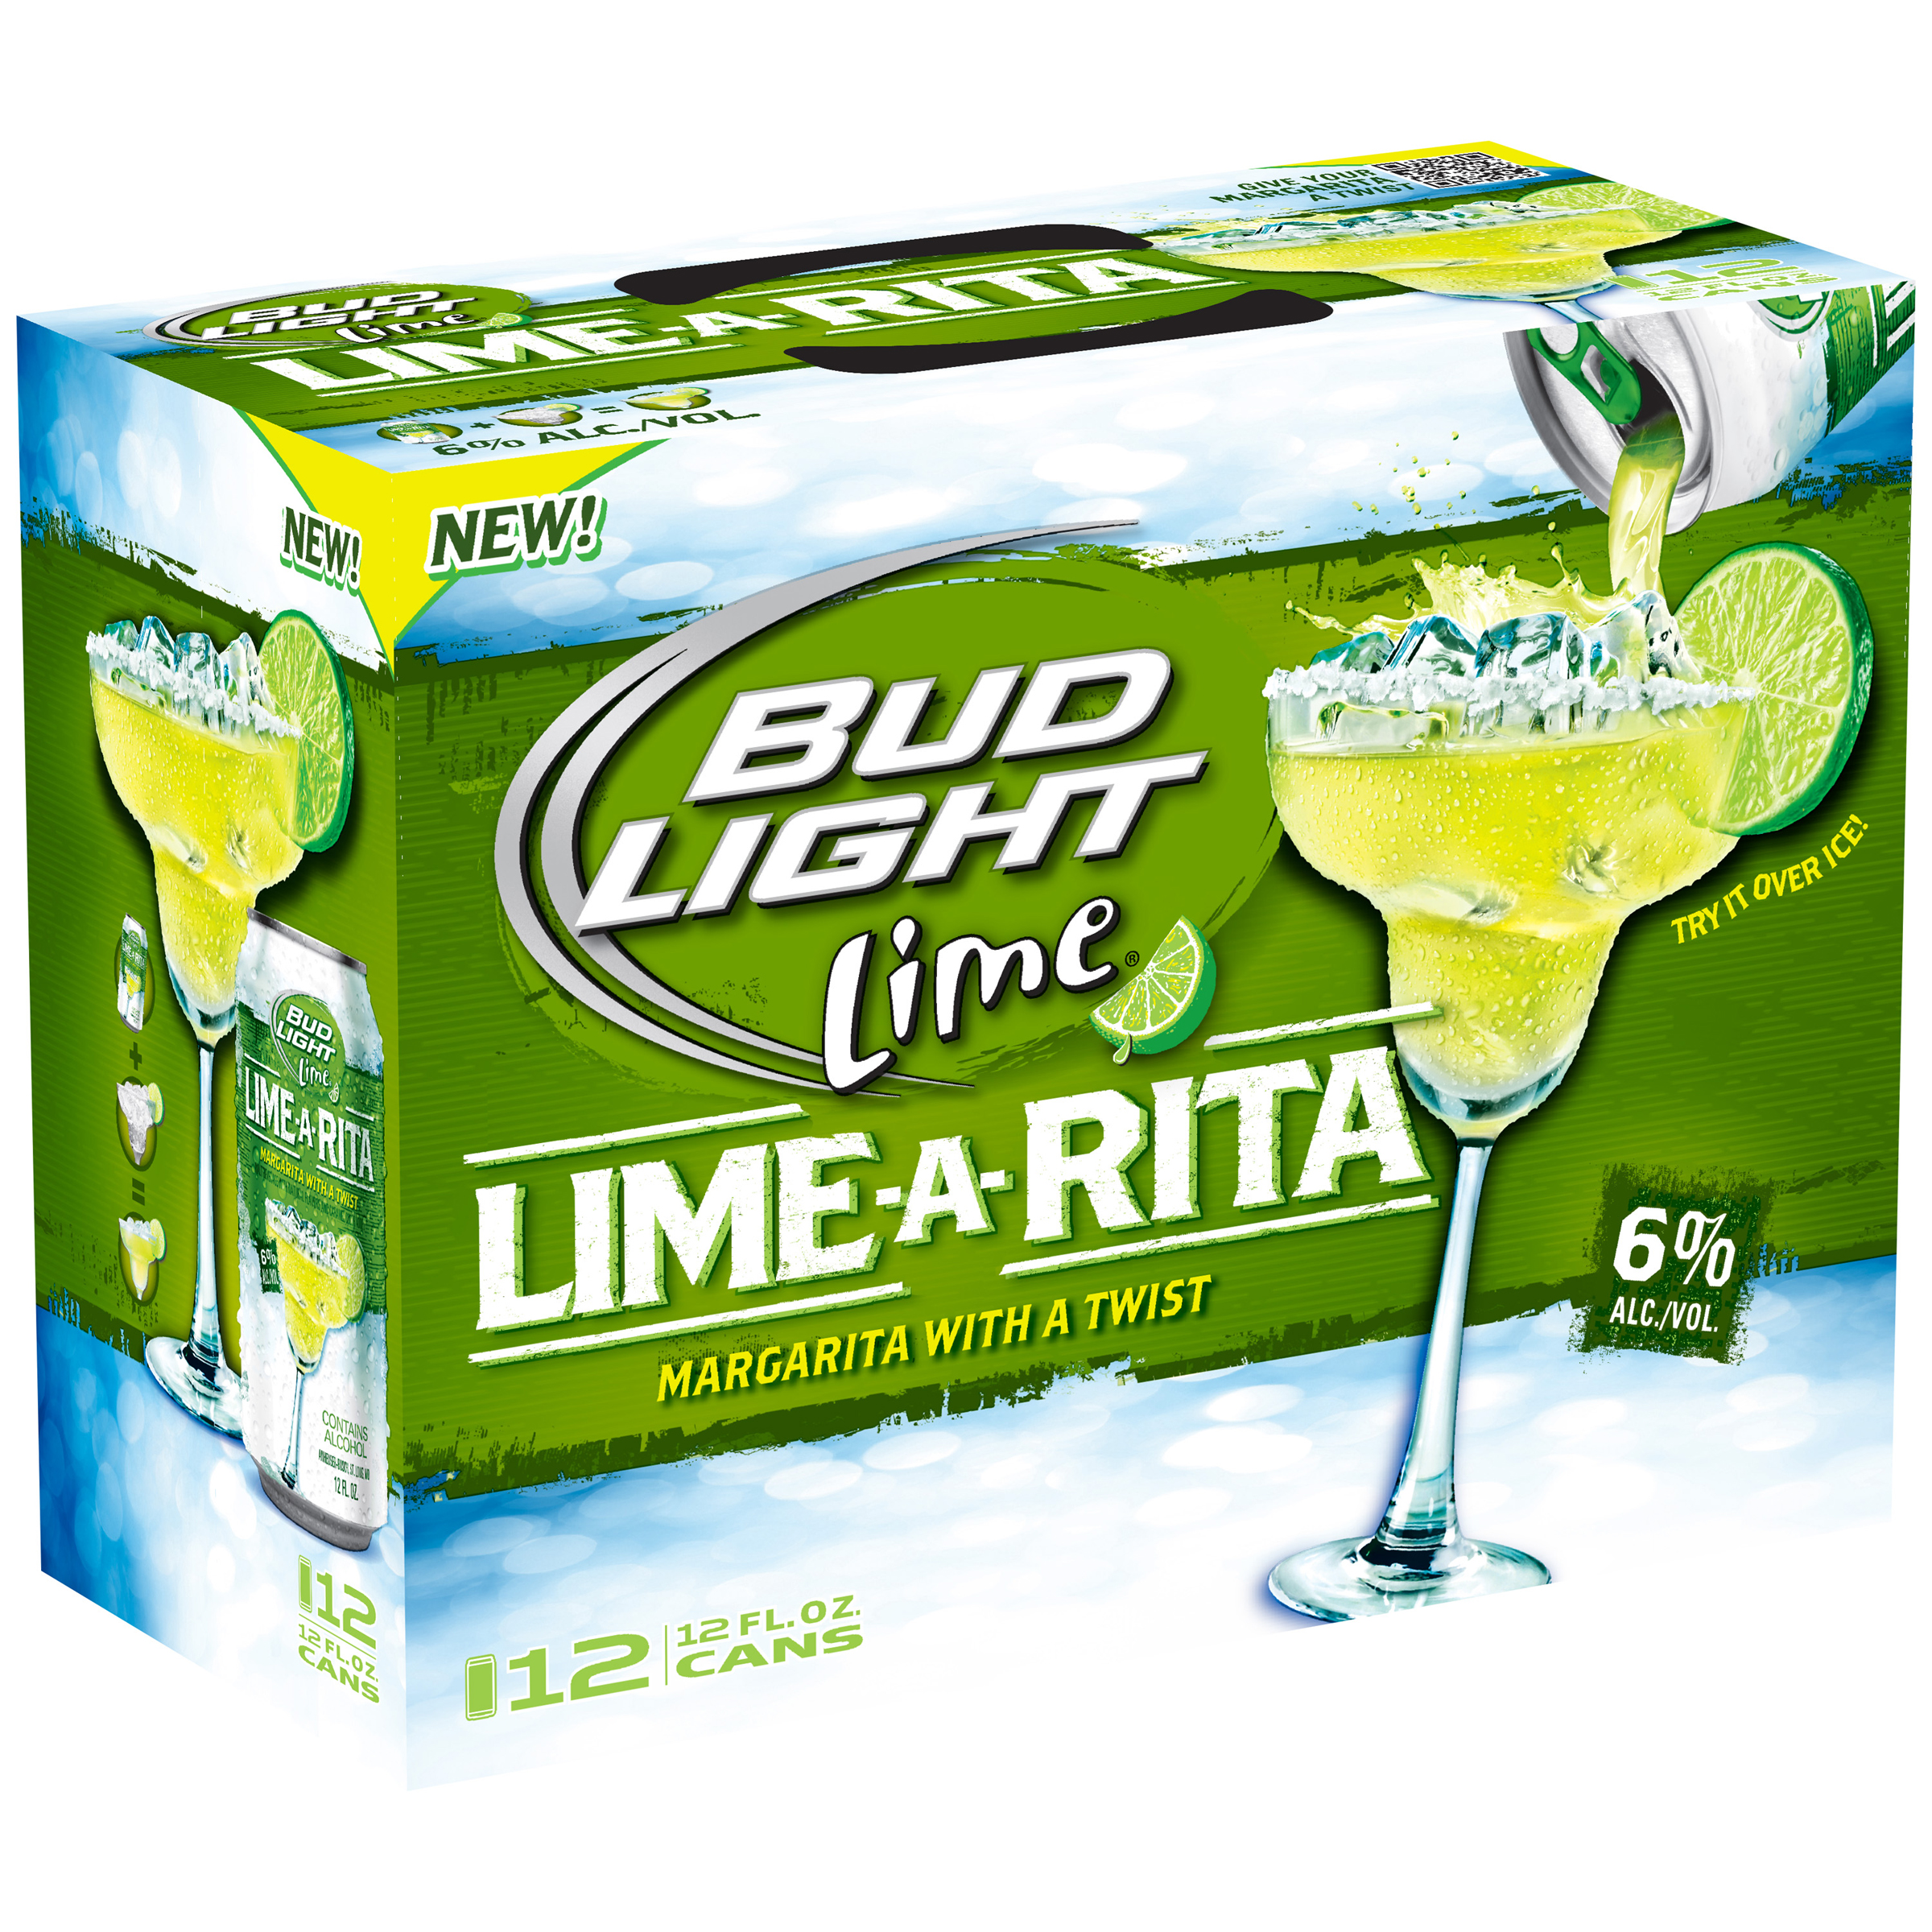 Wonderful Bud Light Lime A Rita, 12 Pk 12 Fl. Oz. Cans   Walmart.com